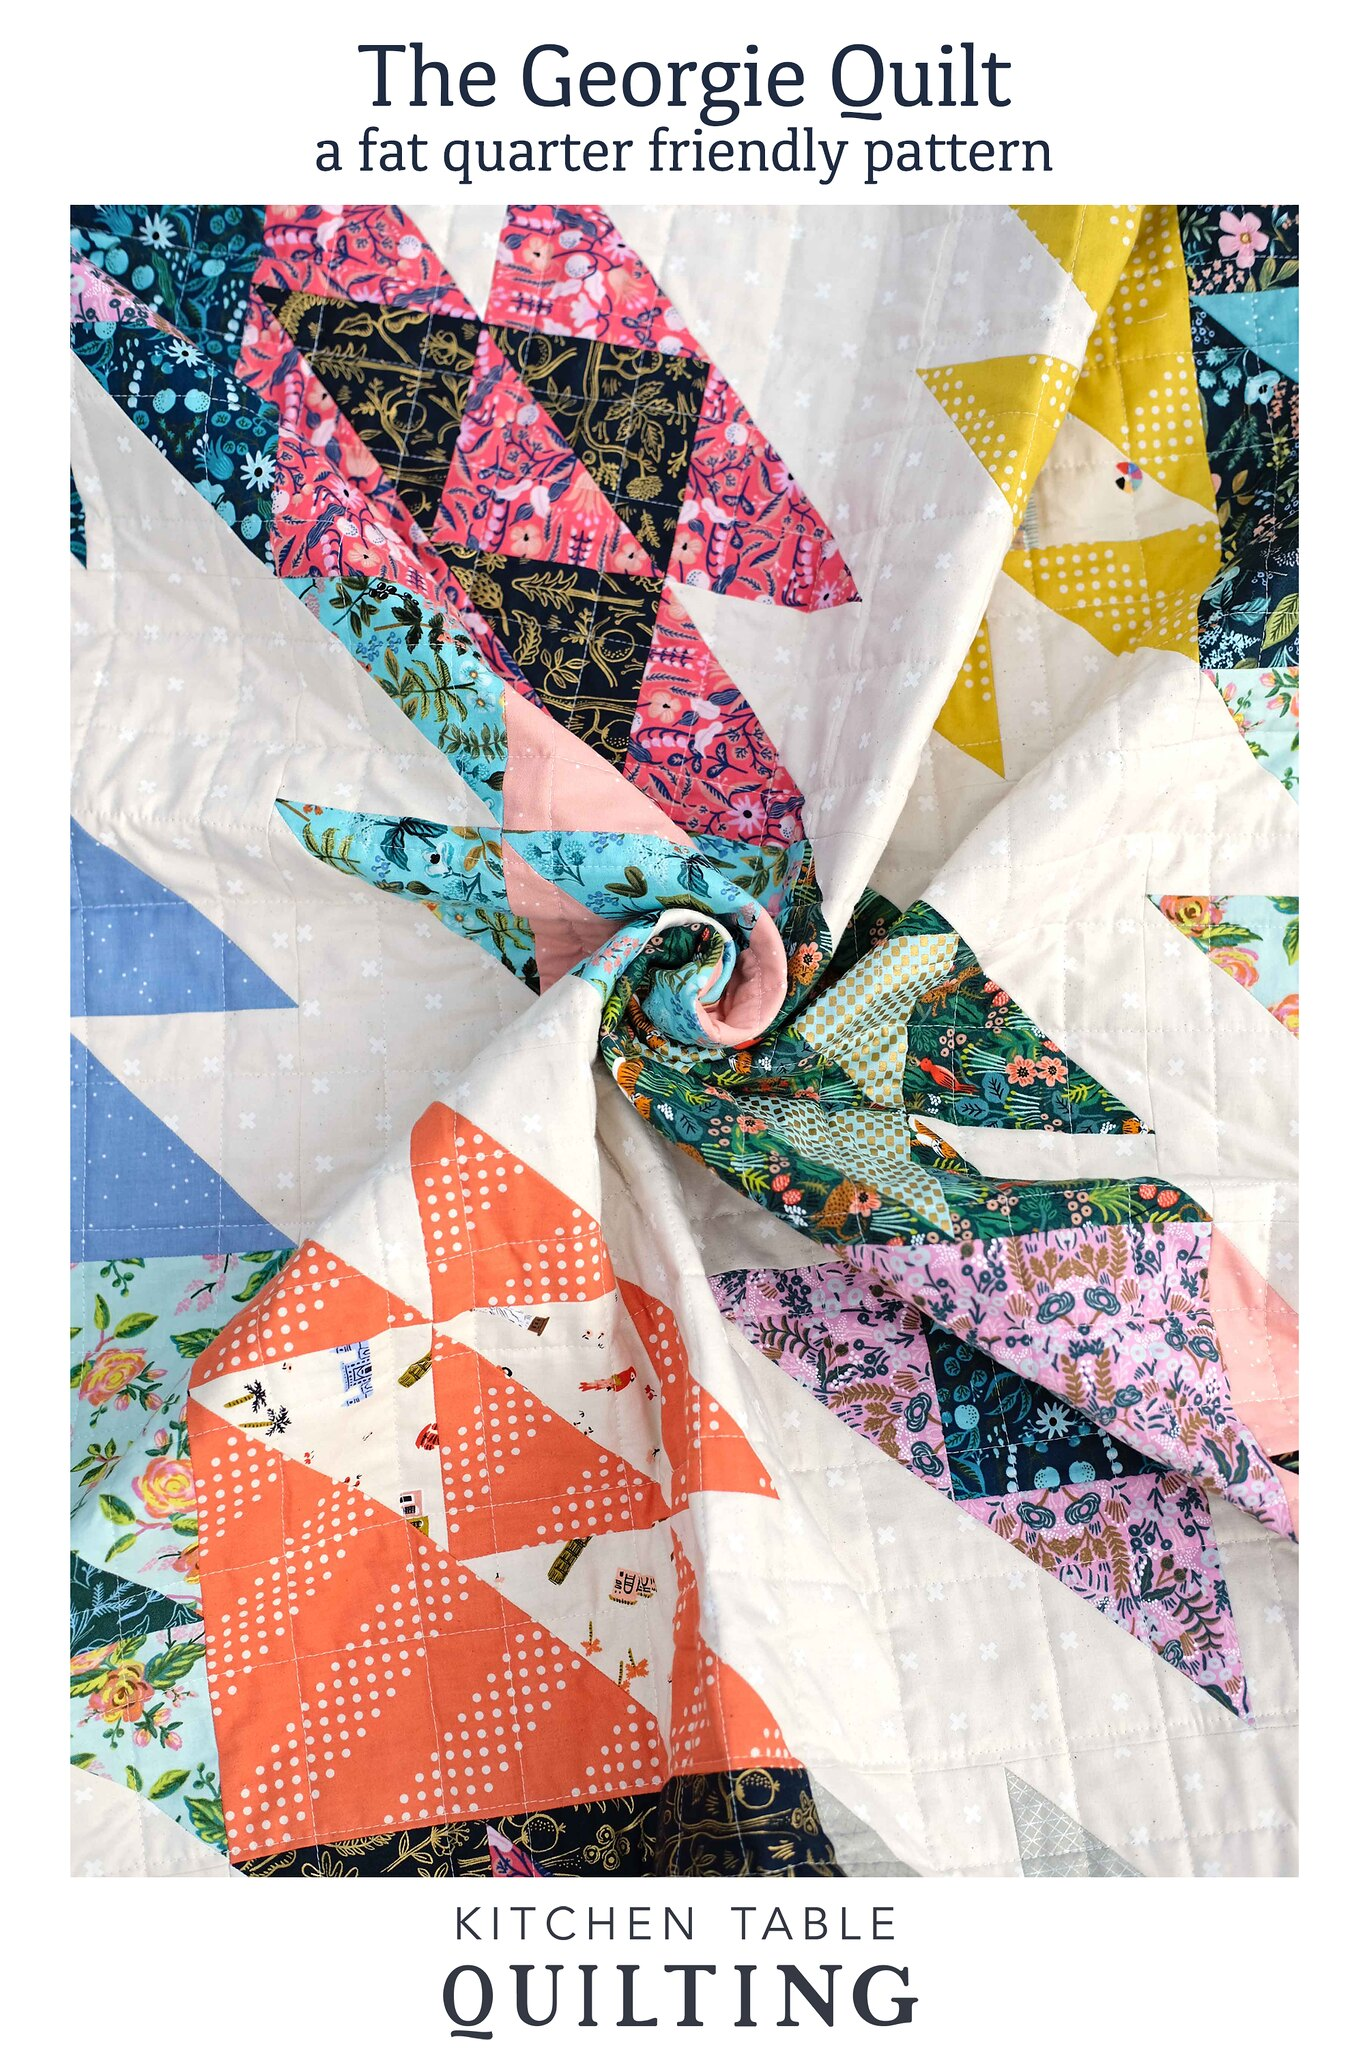 The George Quilt Pattern - Kitchen Table Quilting